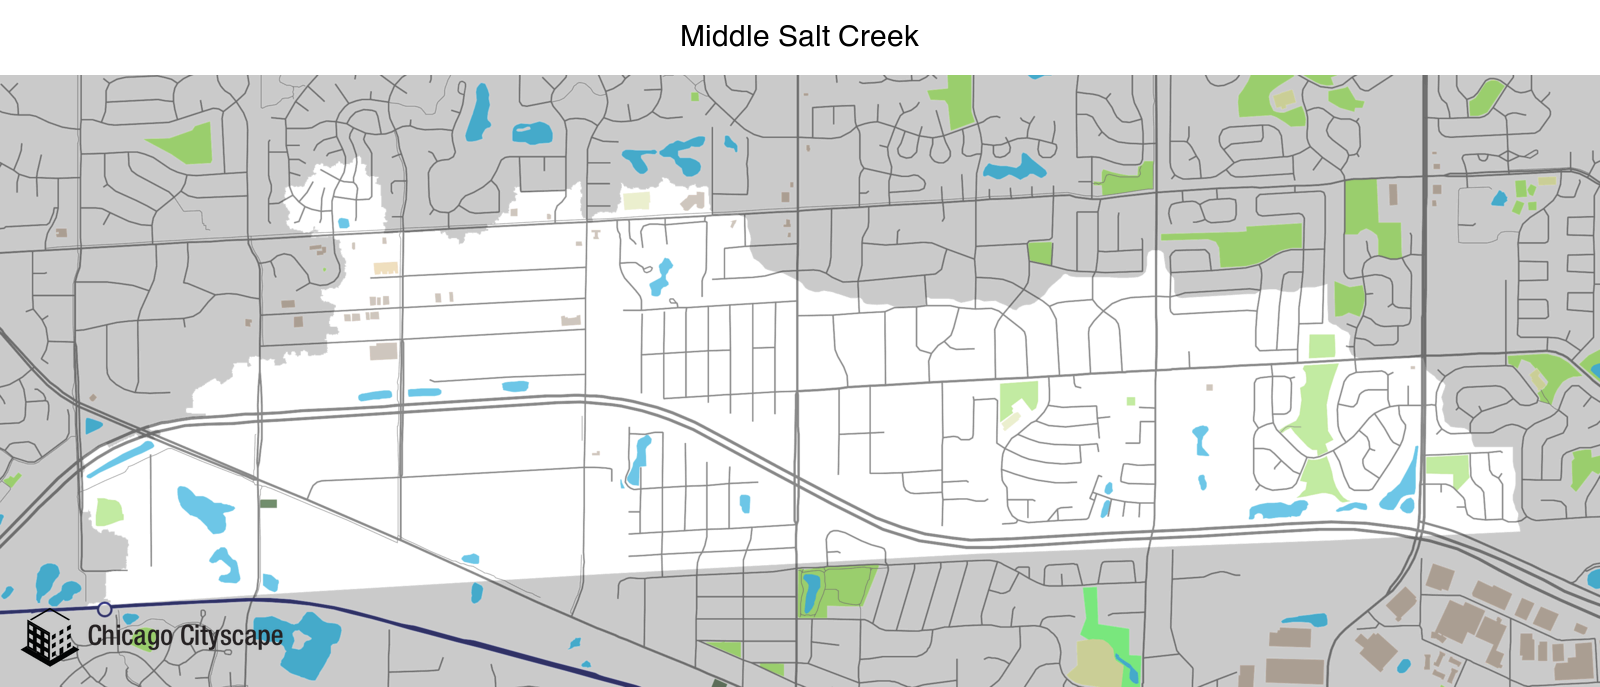 Map of Middle Salt Creek designed by Chicago Cityscape